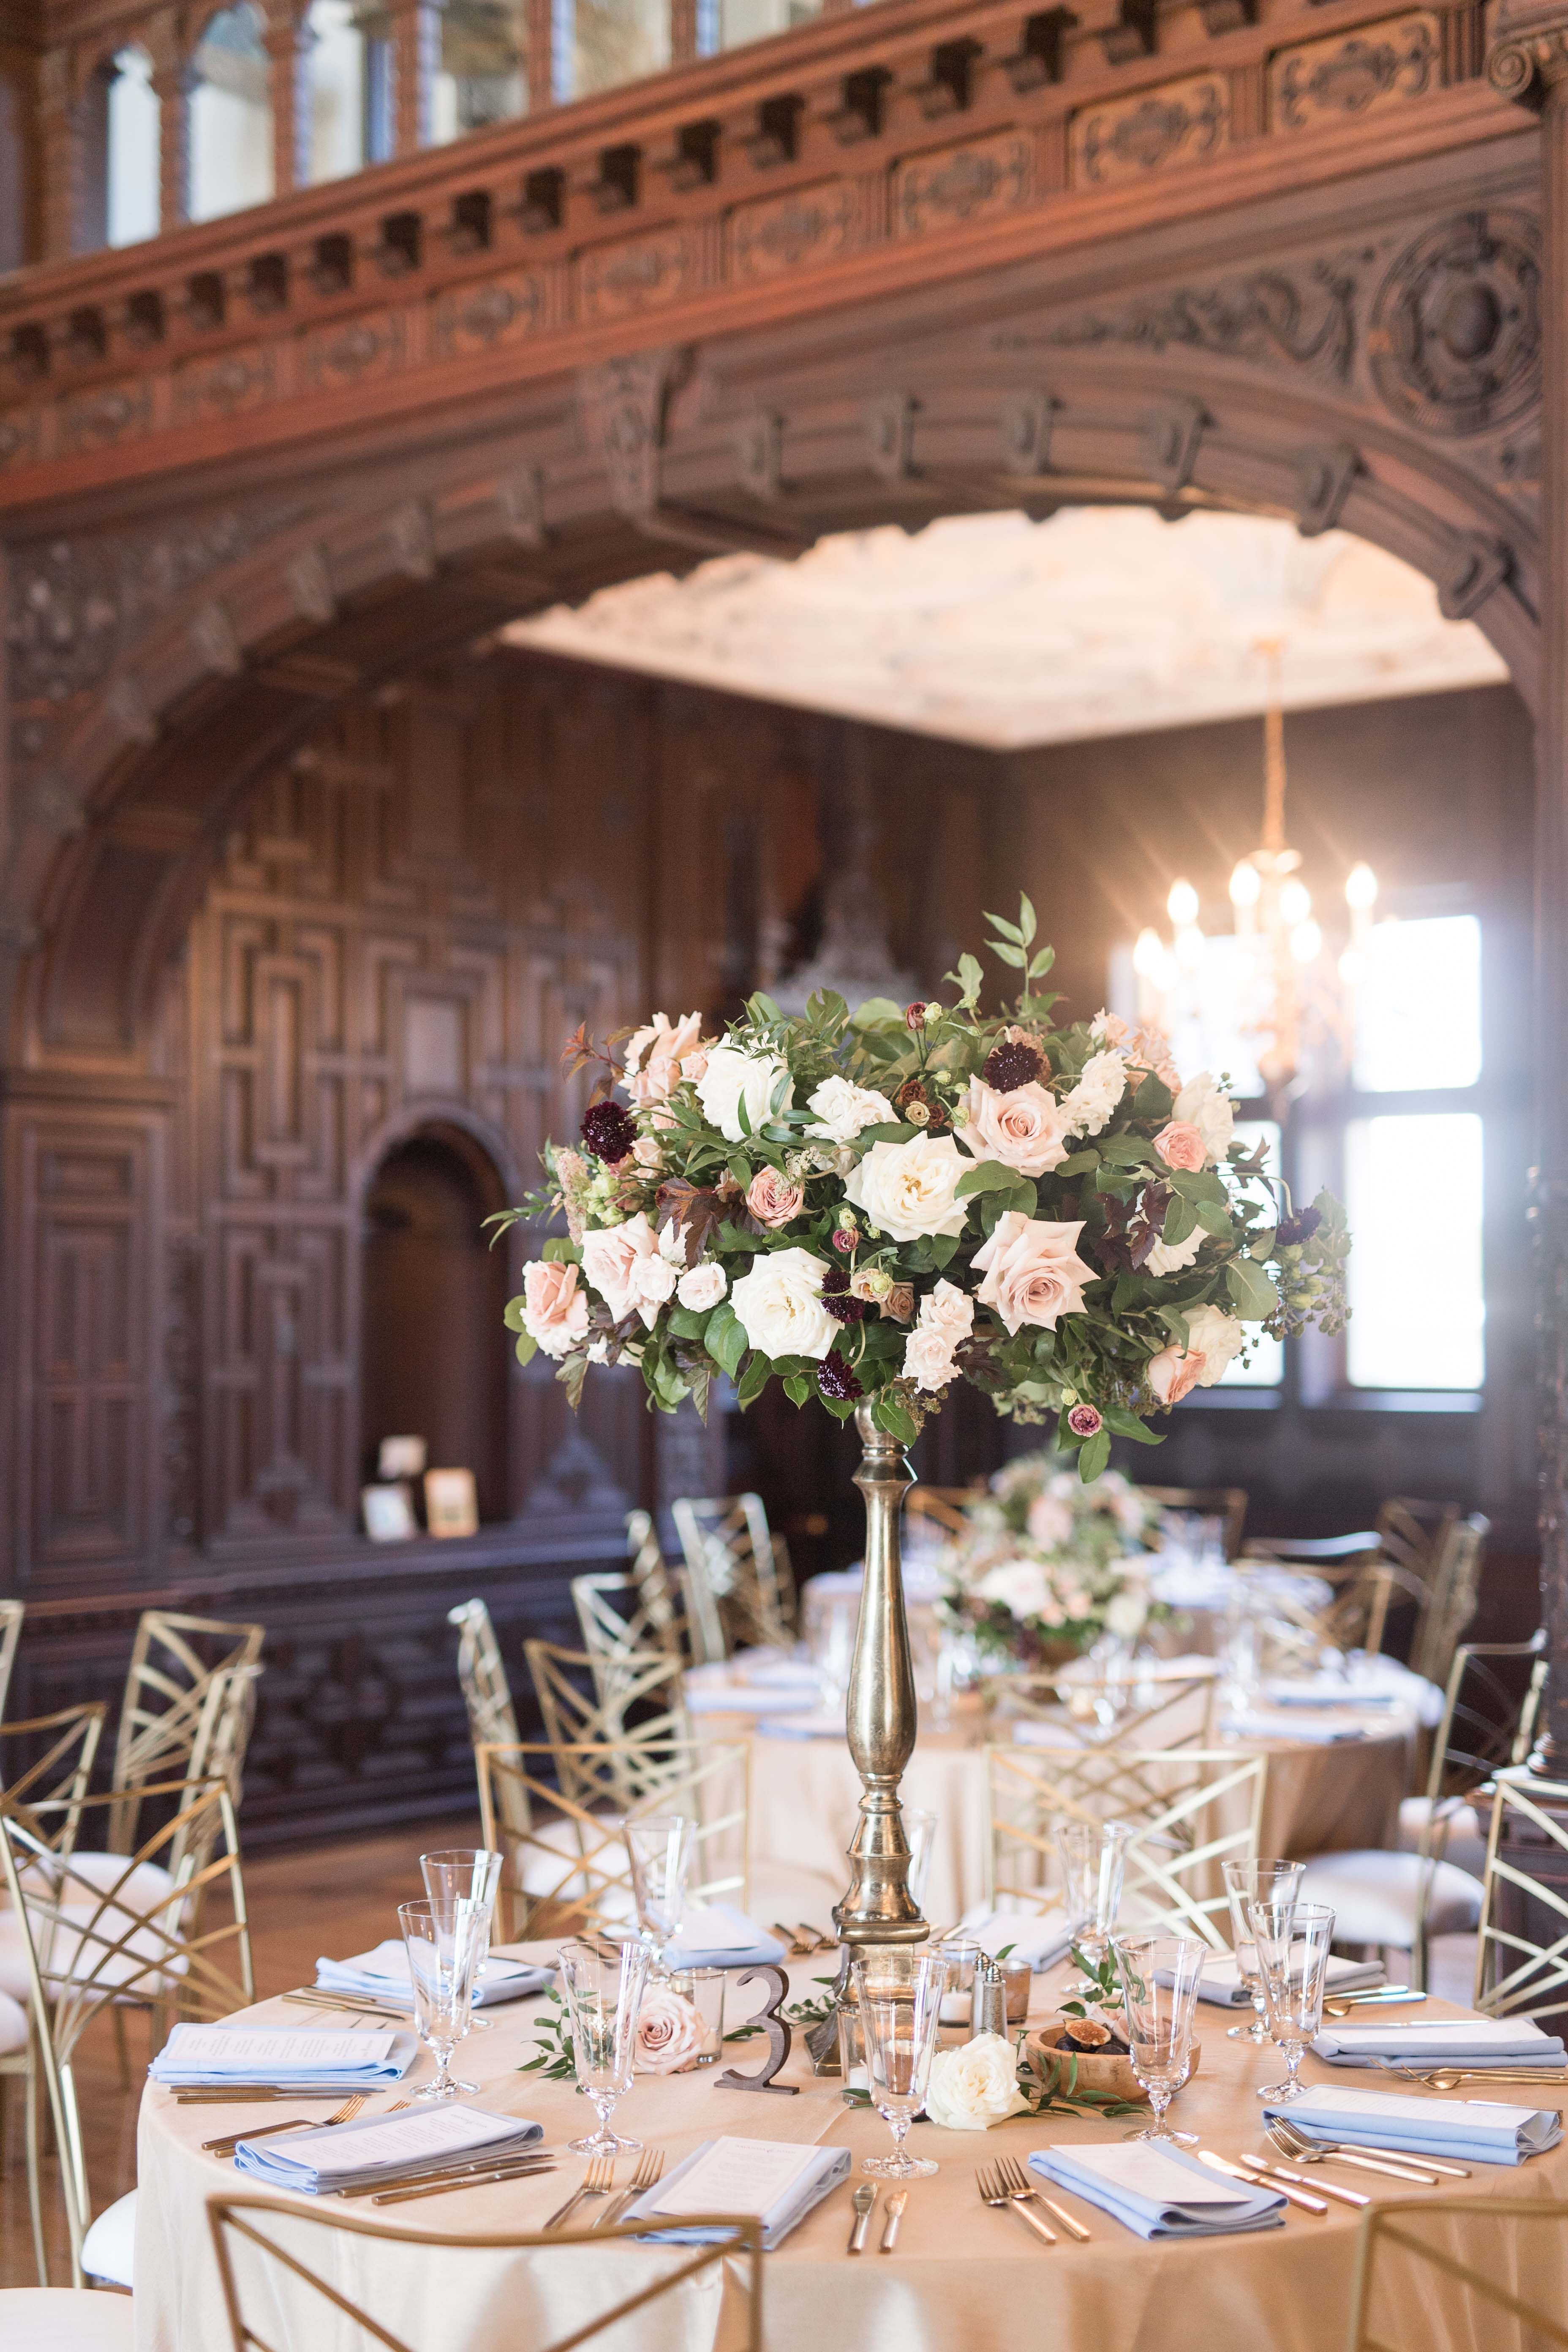 Elegant Dusty Pink Floral Centerpiece At Dreamy Connecticut Wedding Reception At The Branford House In Groton Connecticut Dream Turned Reality By Florist Blu